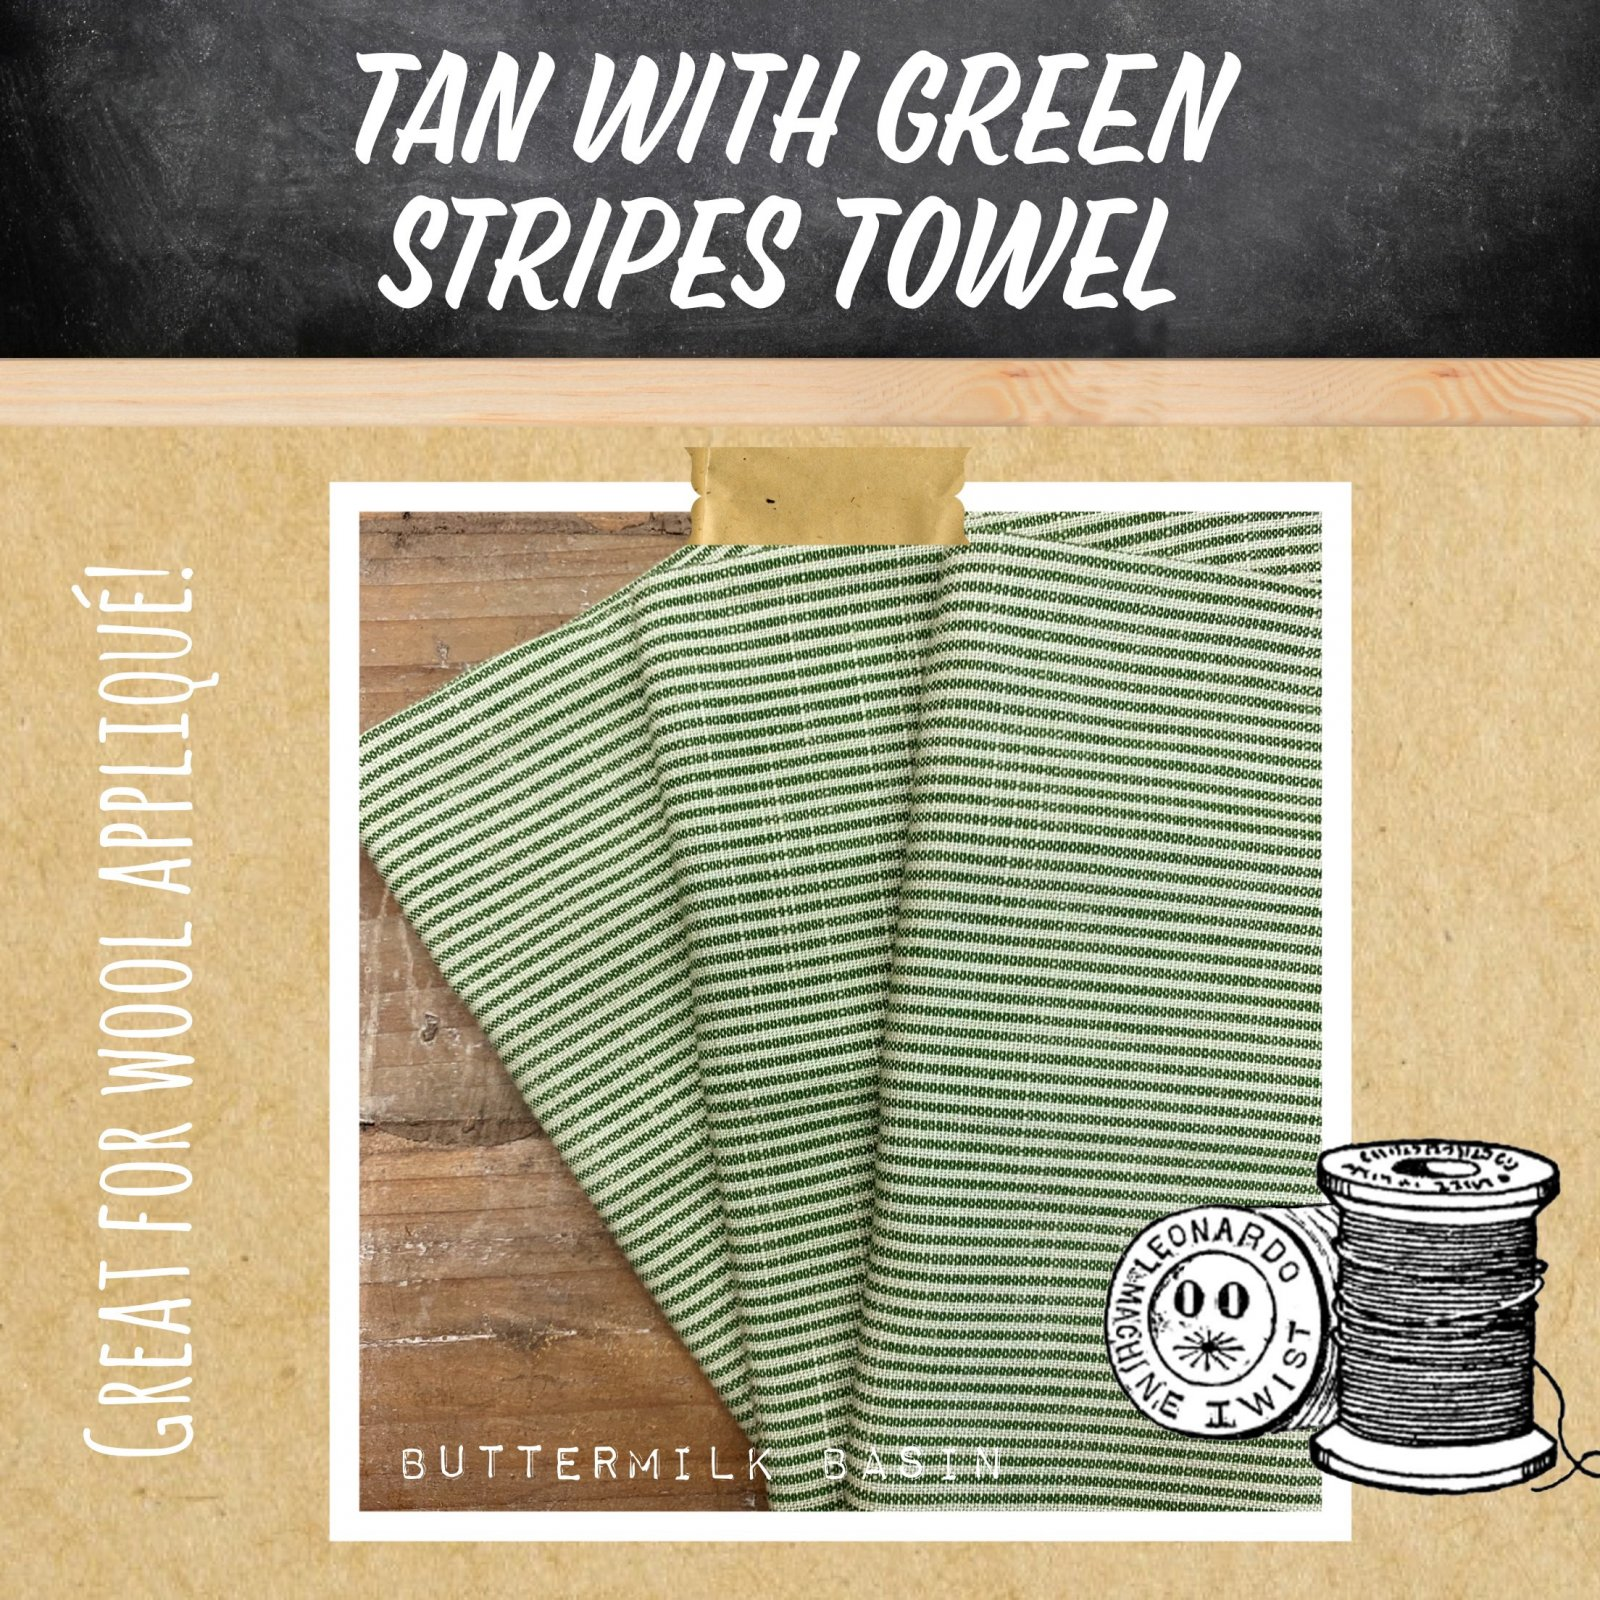 Tan with Green Stripes Towel